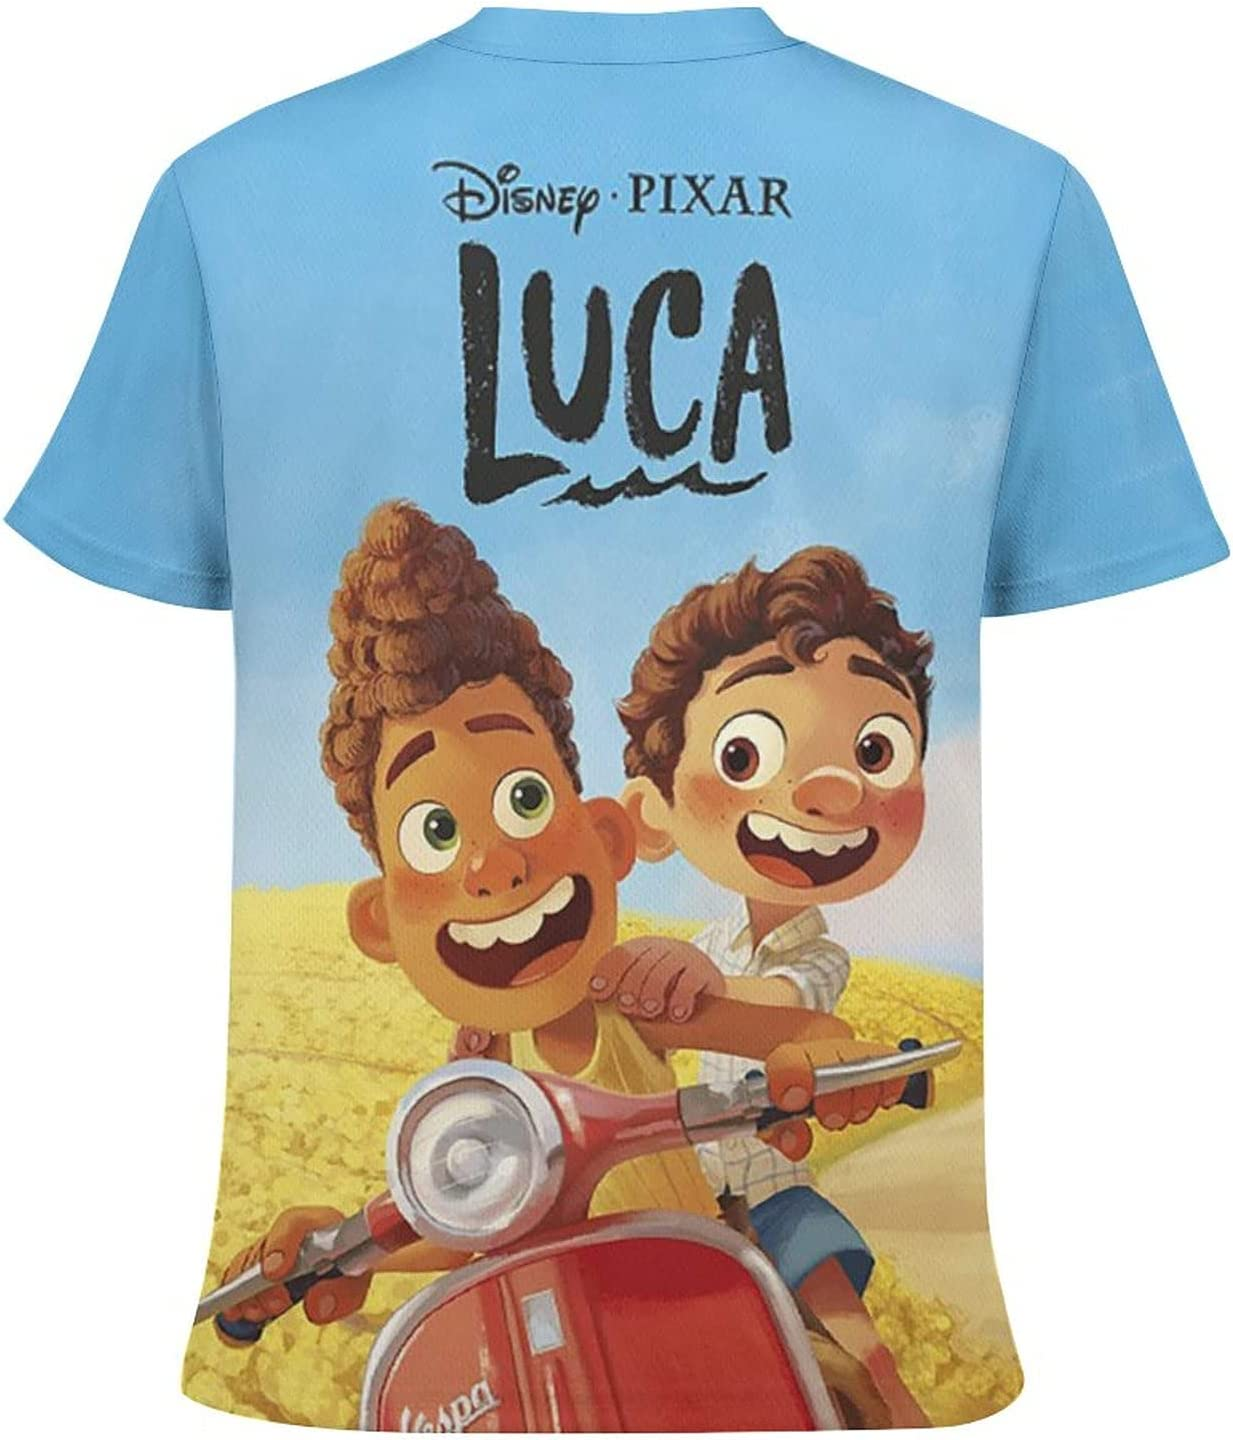 Kid's Novelty Graphic Round Neck Short Sleeve T-Shirt Cozy Trendy Tee Shirts Tops for Boys S